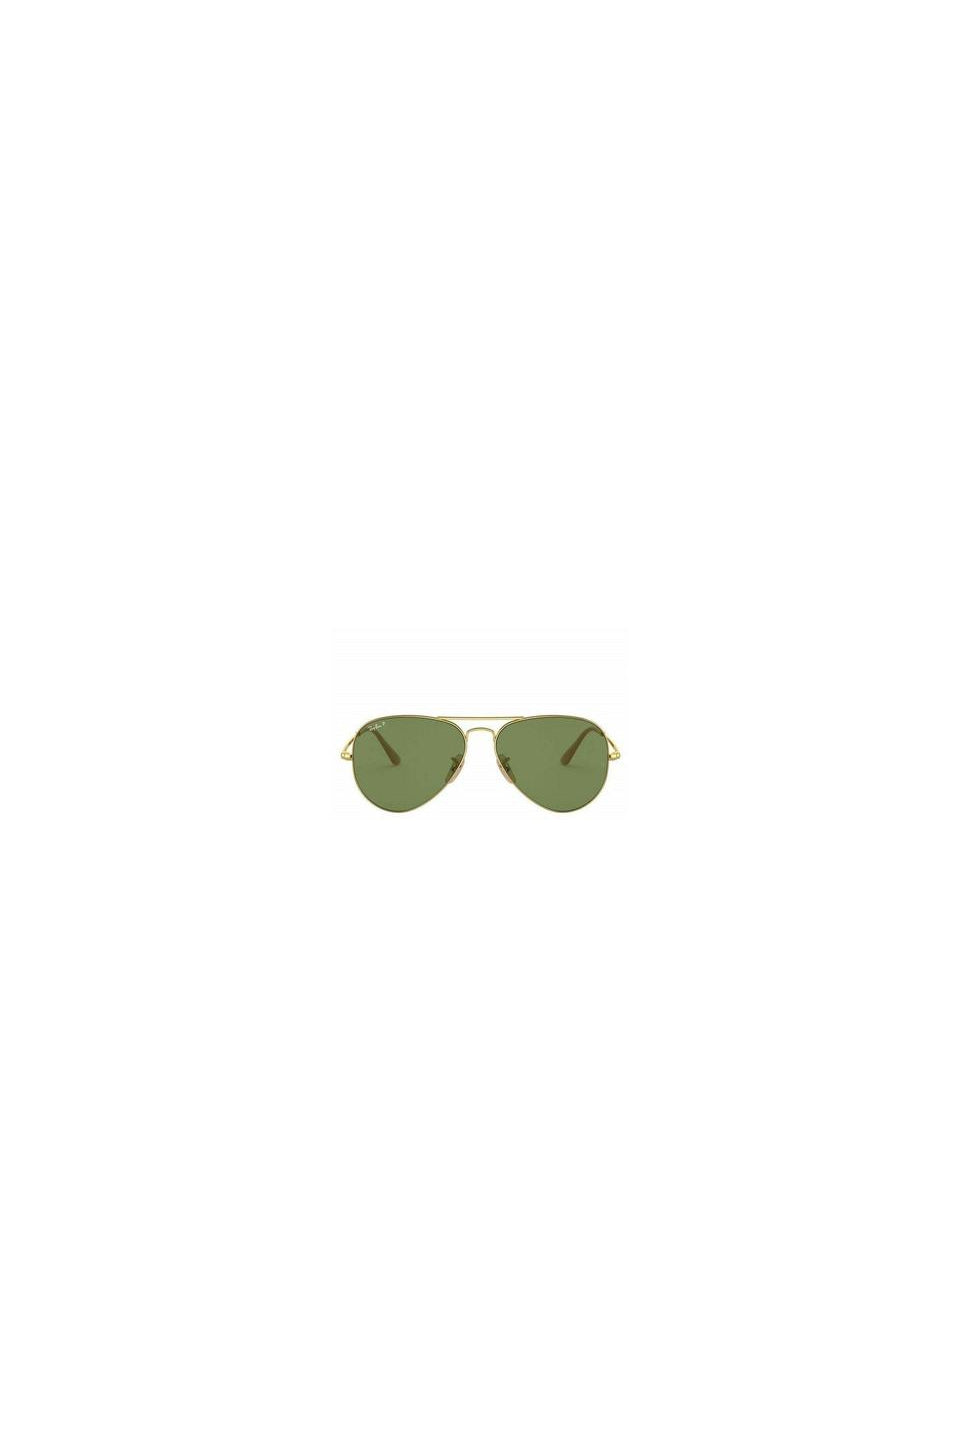 Ray-Ban RB3689 Green Classic G-15 Polarized Sunglasses